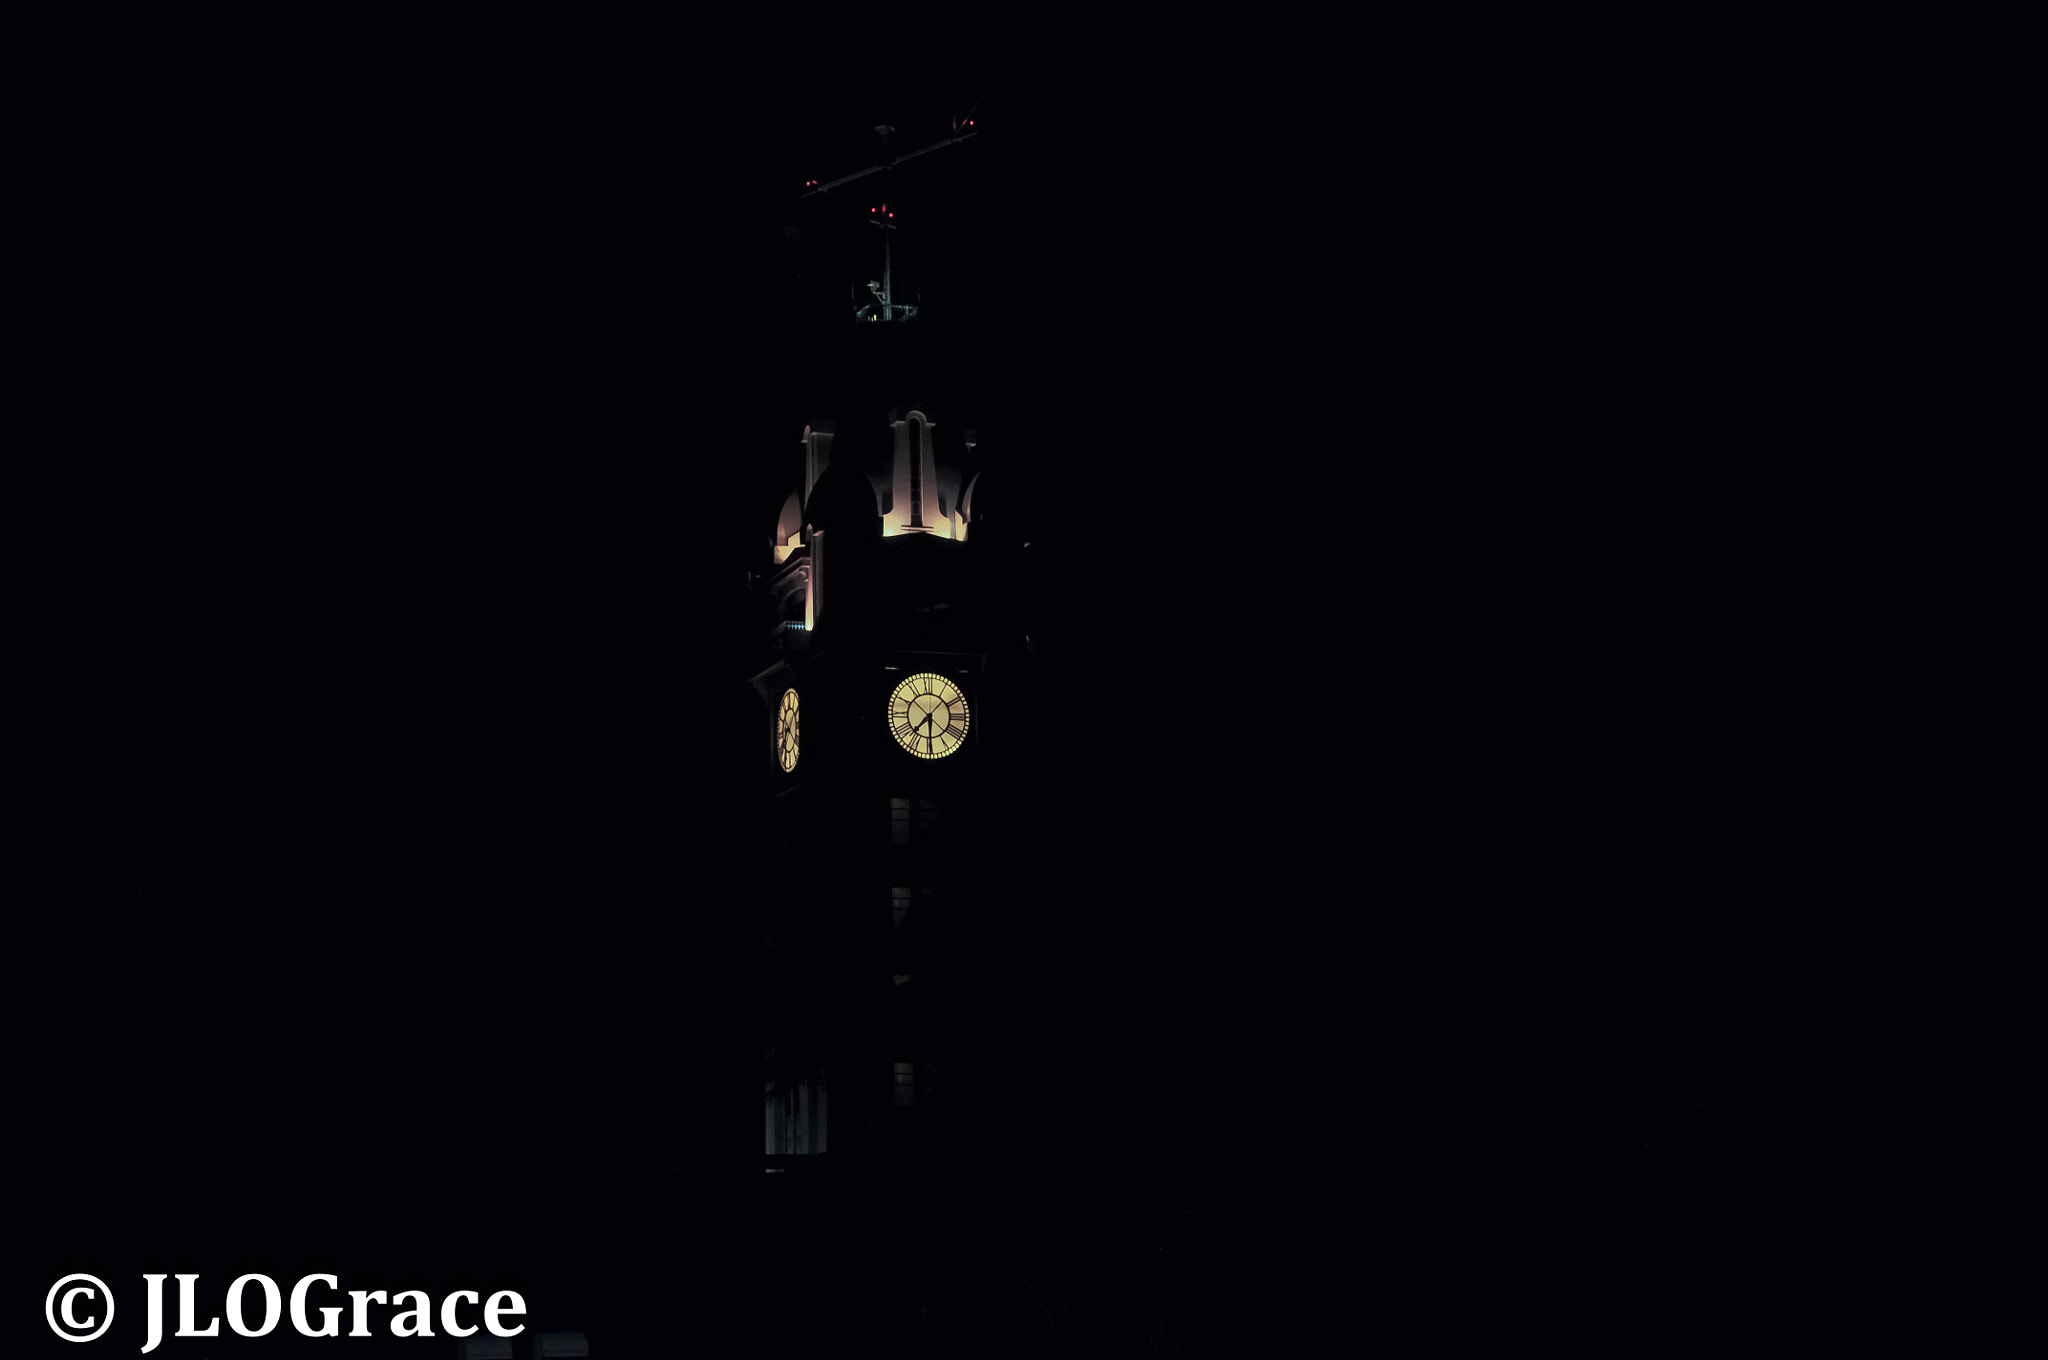 Photograph Clock Tower by Janis Grace on 500px